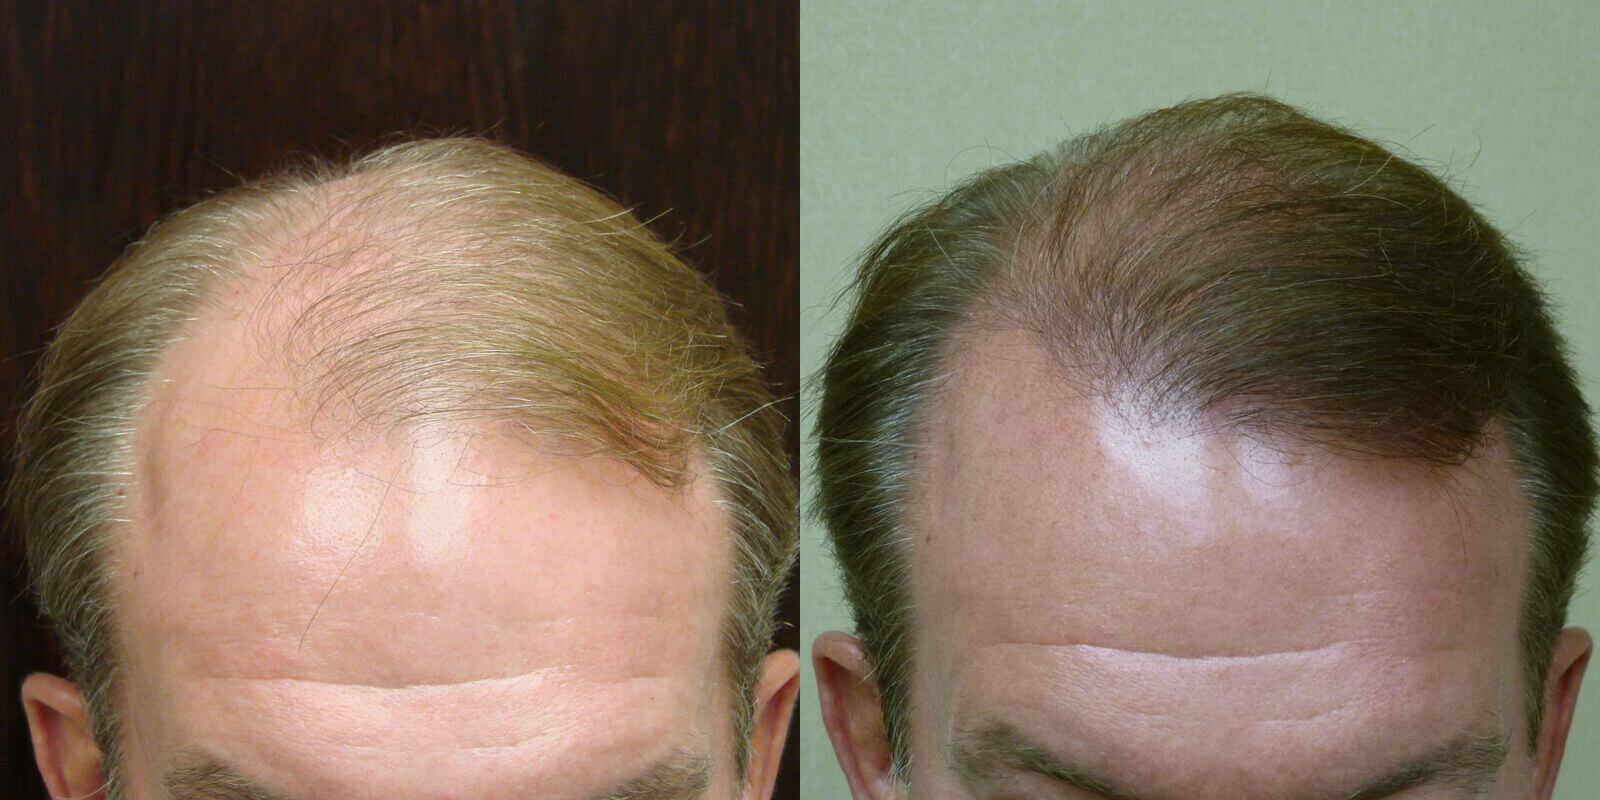 Neograft 58 years old 2,500 grafts before and 1 1/2 years after